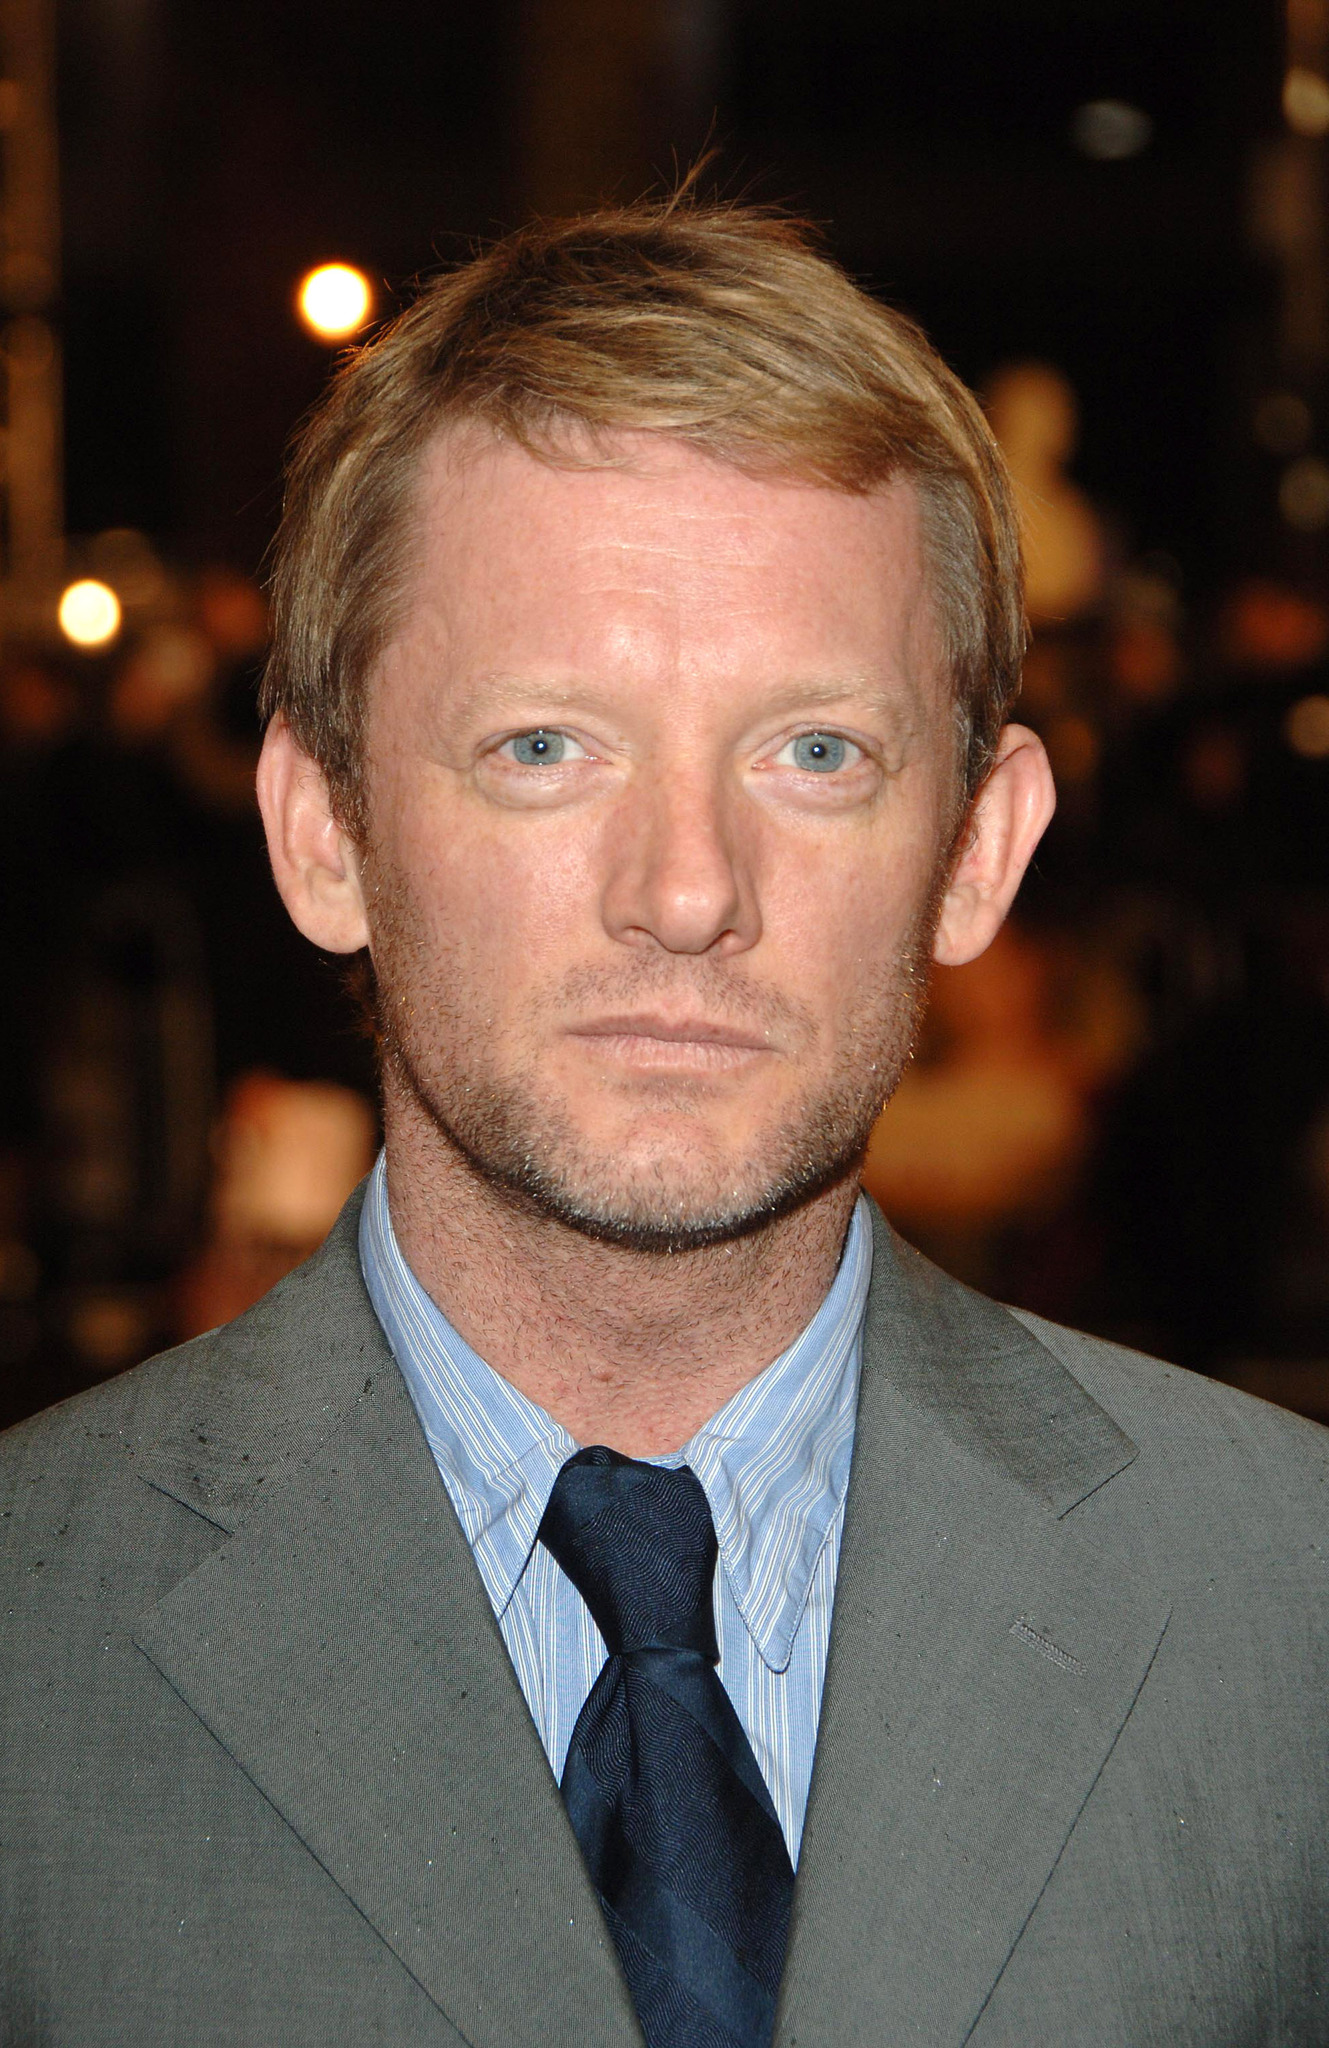 Serie Doug Douglas Henshall Movies Bio And Lists On Mubi